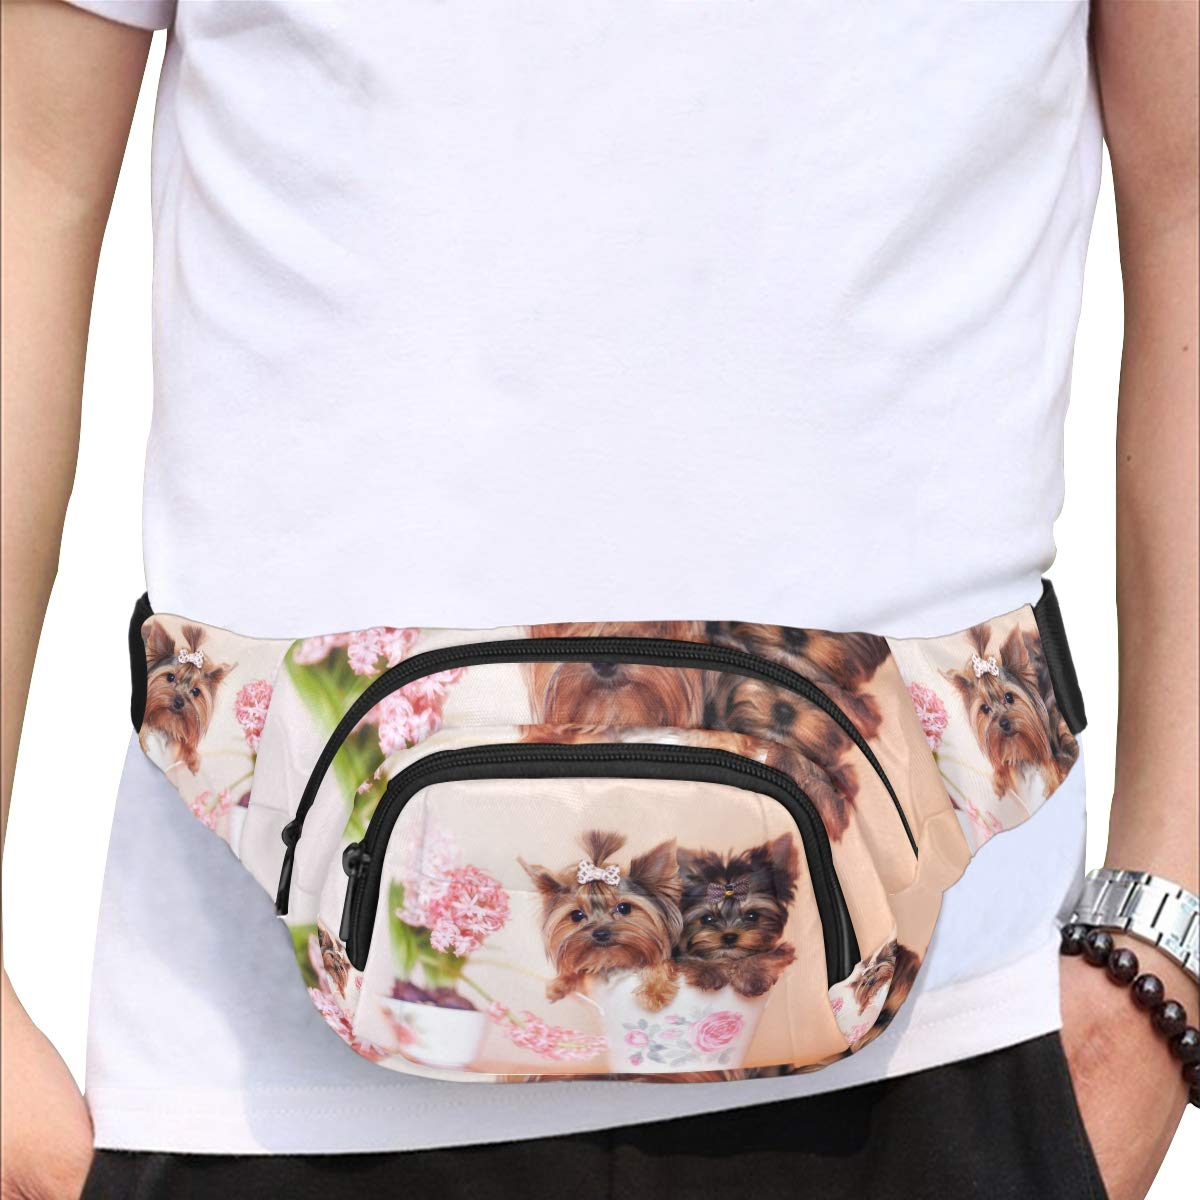 Beautiful Puppy Sitting In The Cup Fenny Packs Waist Bags Adjustable Belt Waterproof Nylon Travel Running Sport Vacation Party For Men Women Boys Girls Kids